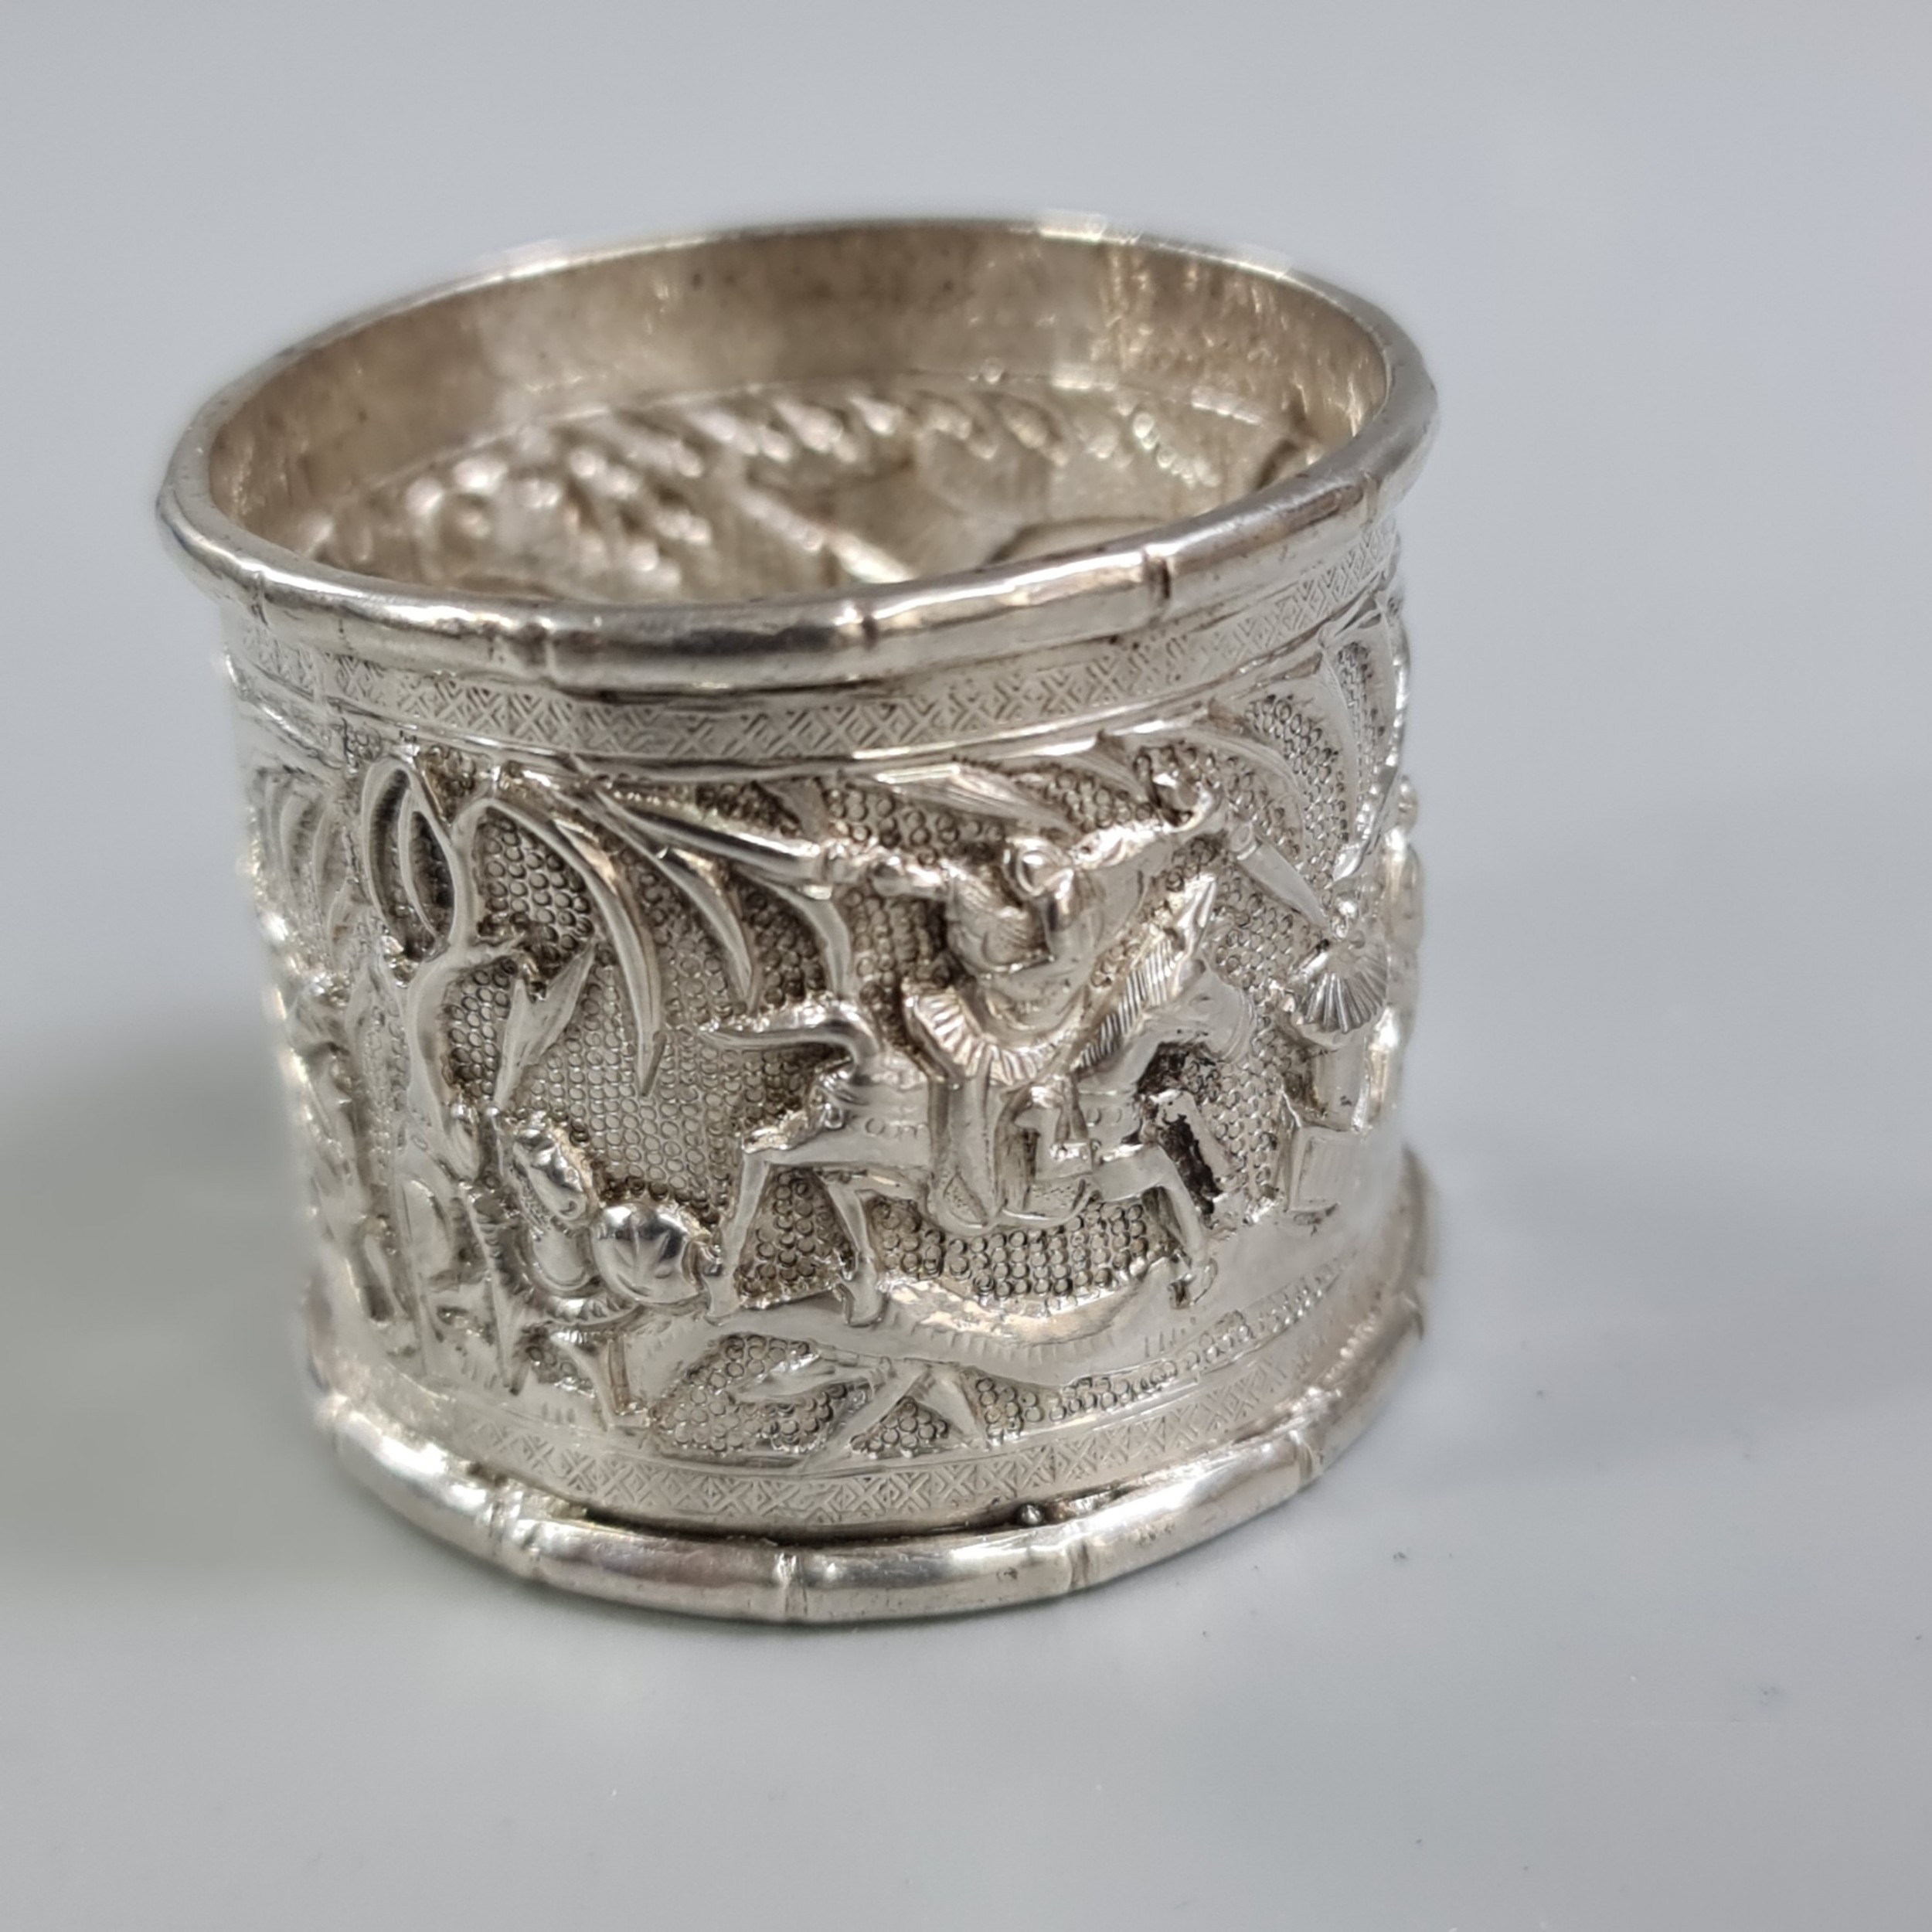 profusely decorated large antique oriental silver napkin ring c1900